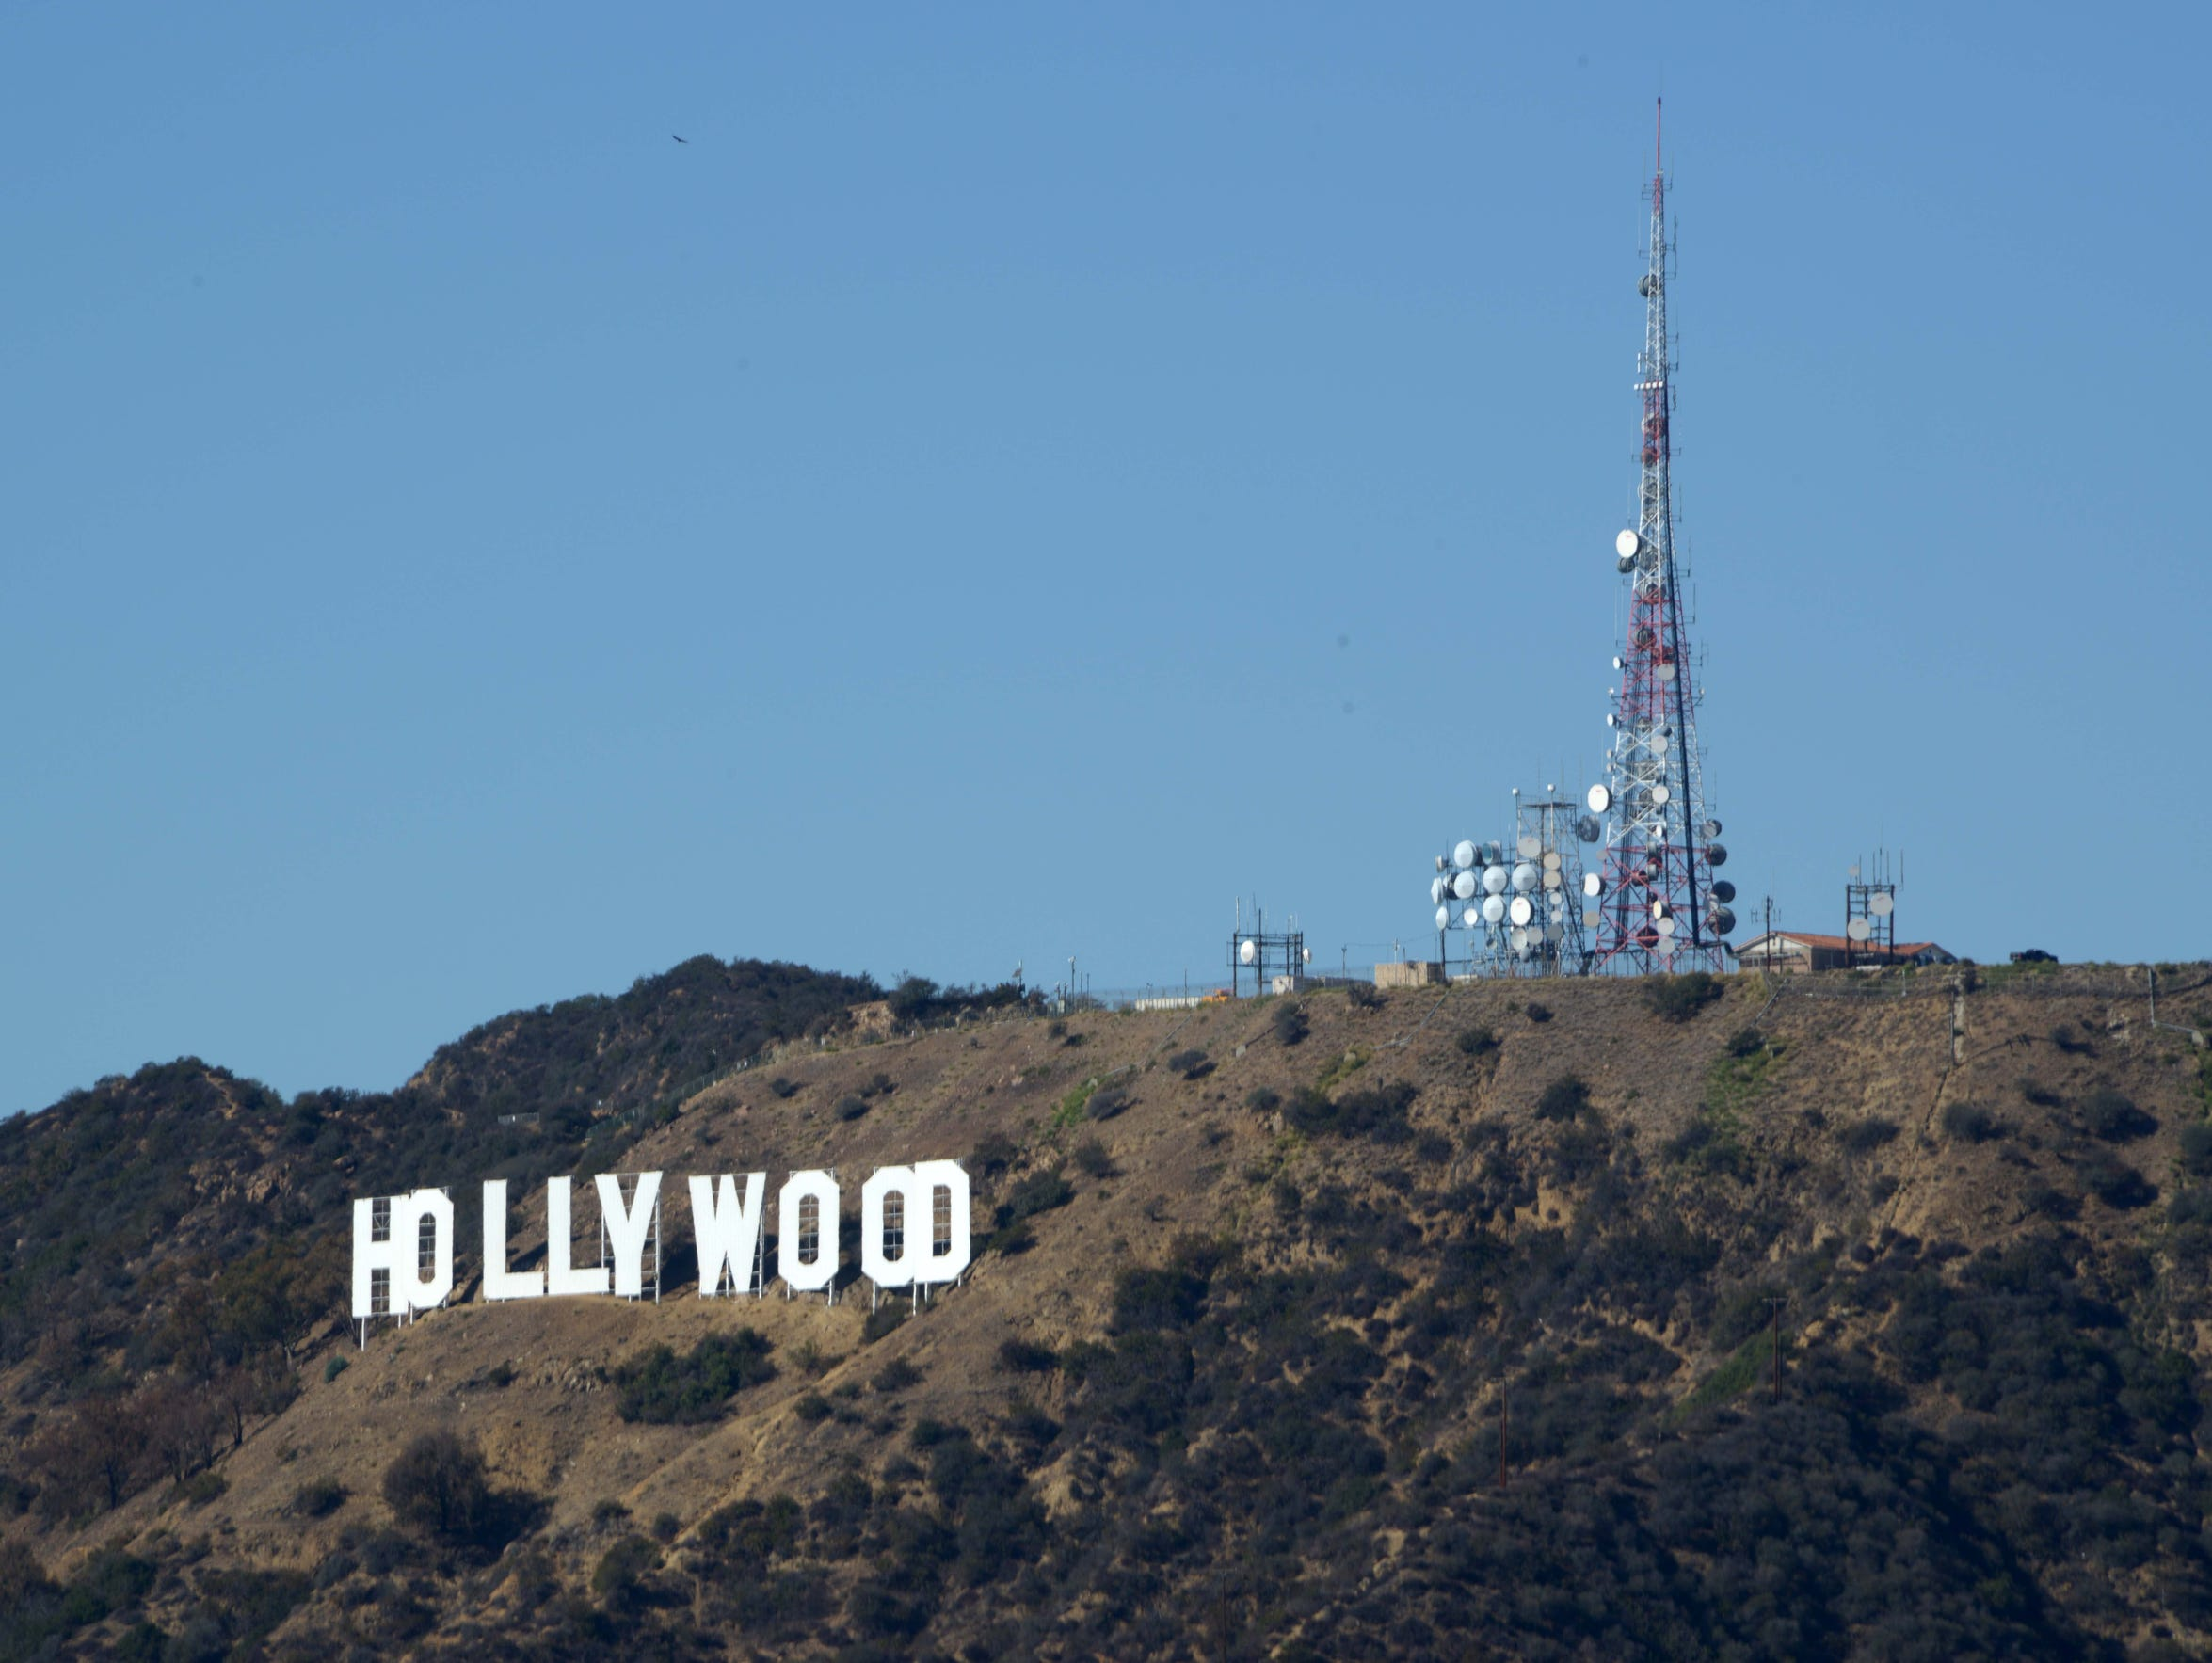 Sexual assault experienced by 94% of women in Hollywood ...